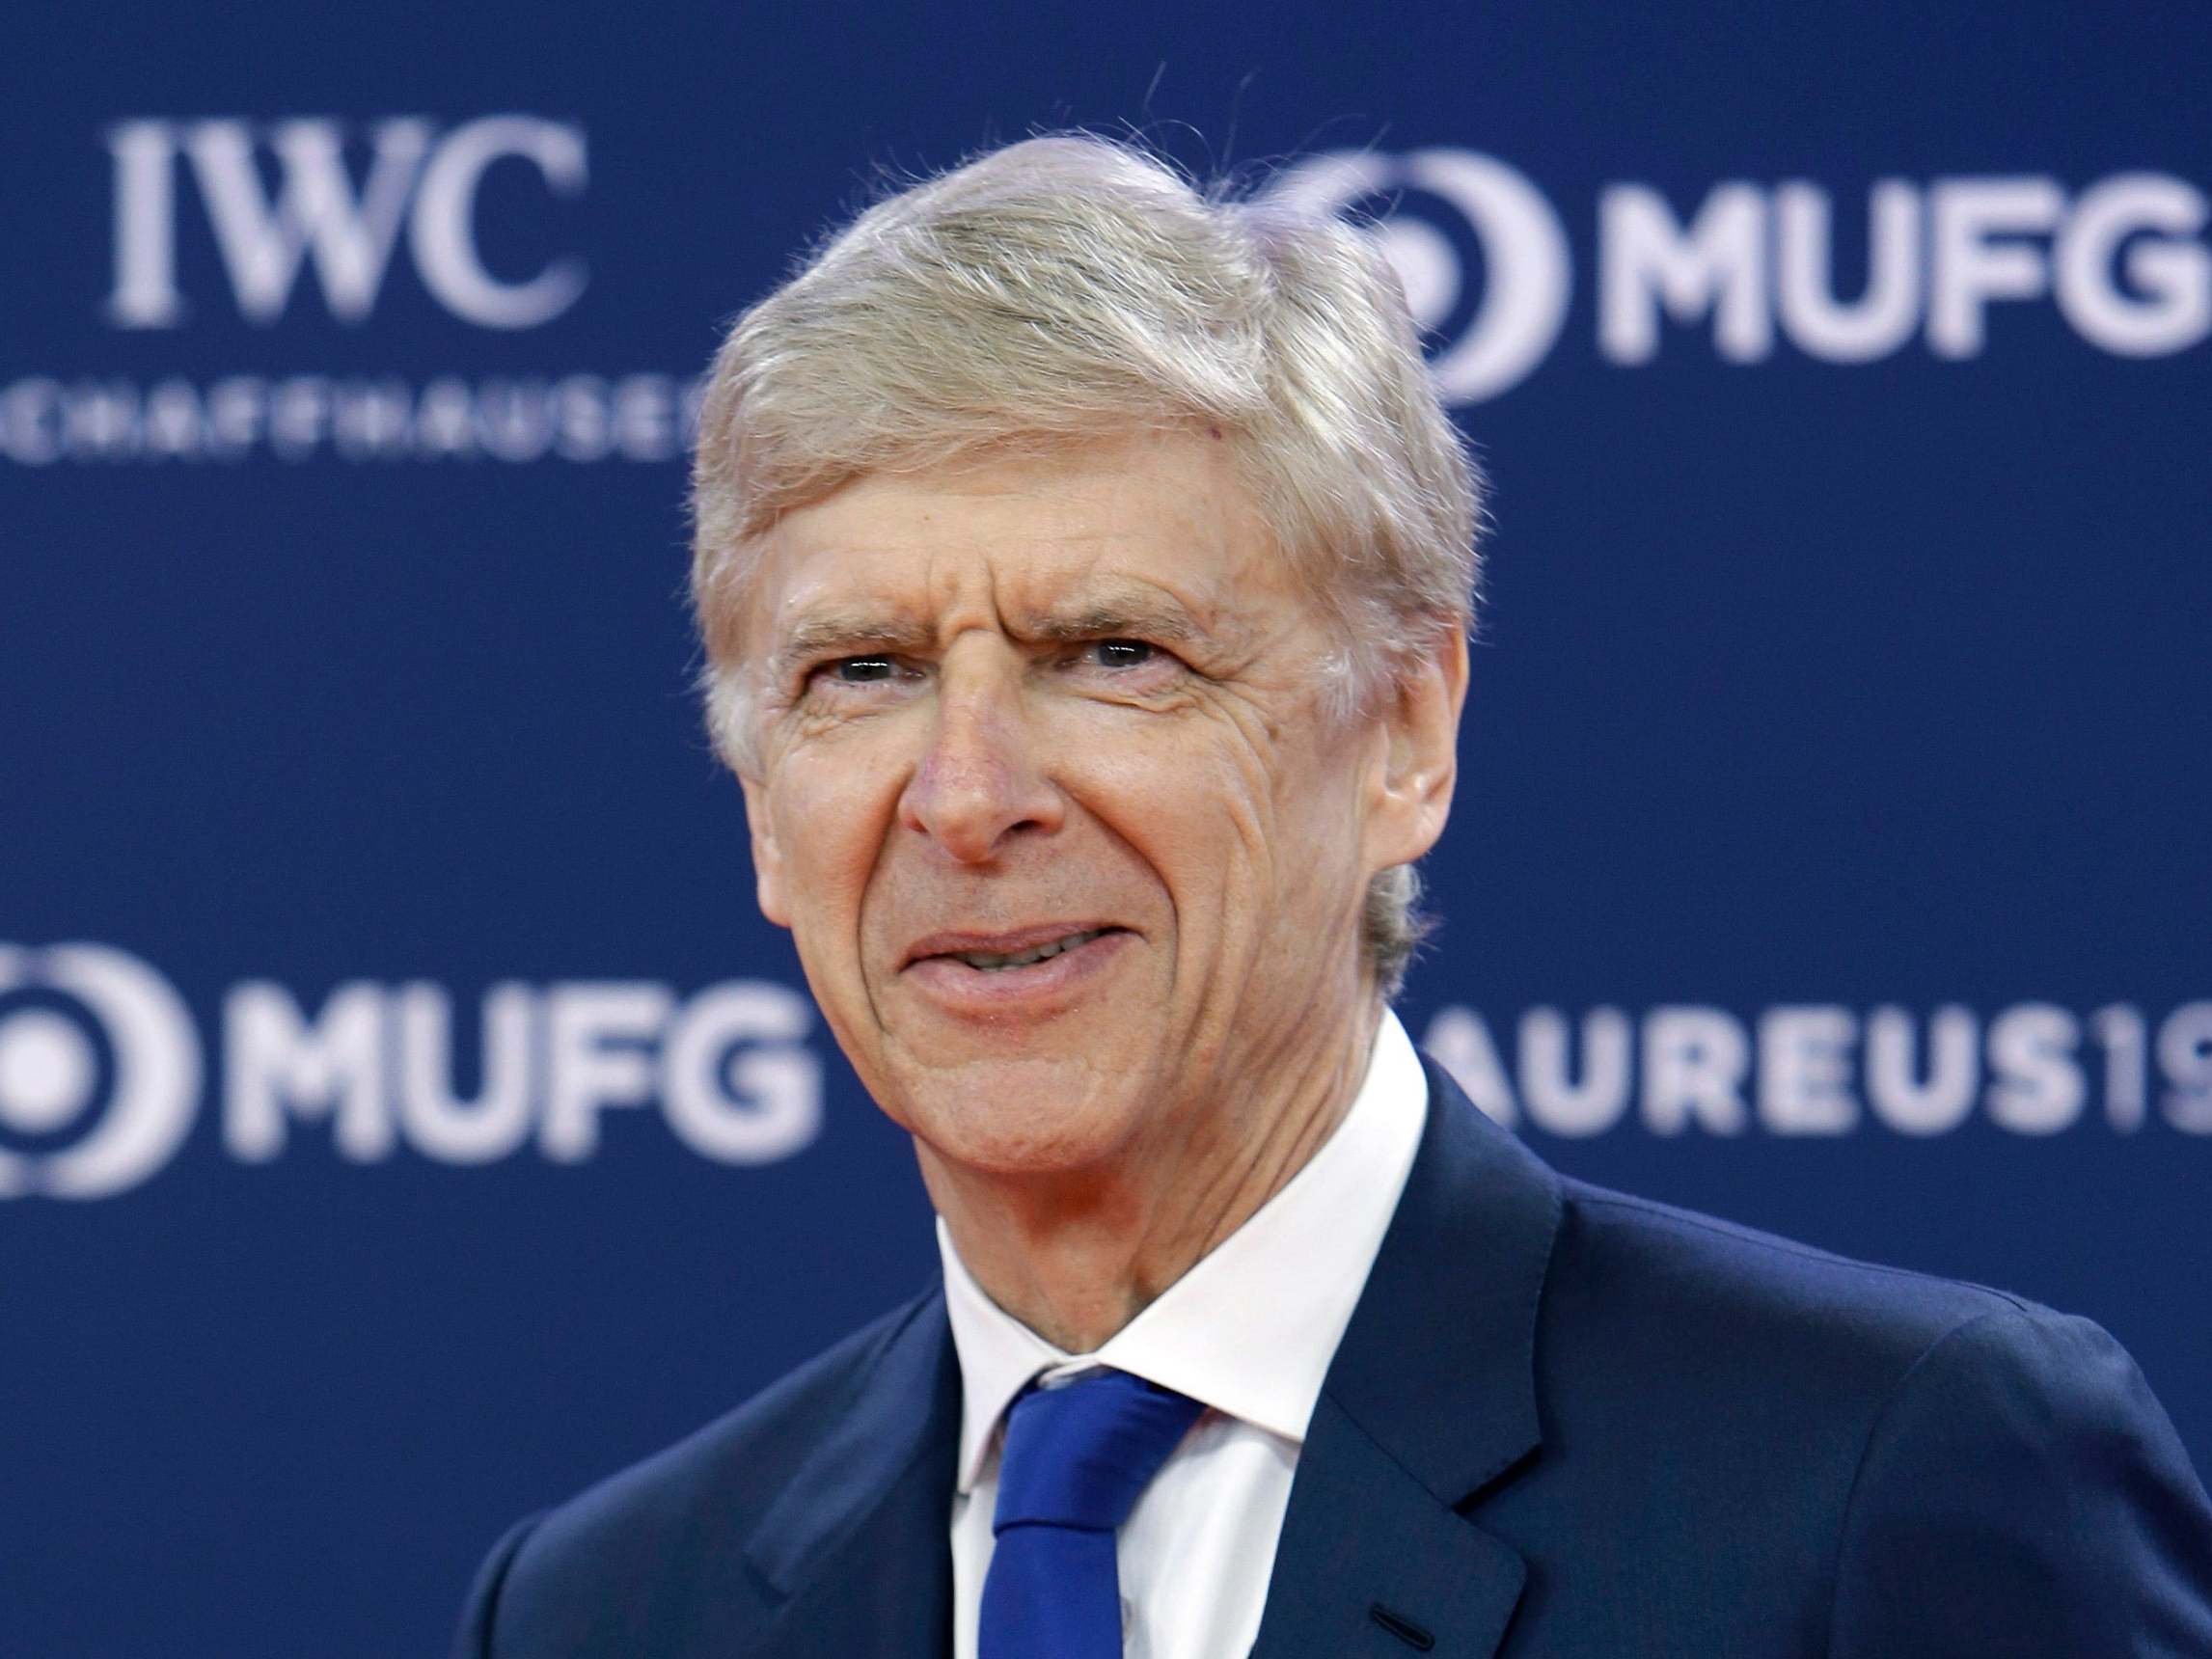 Wenger delivers scathing verdict on Madrid after collapse vs City